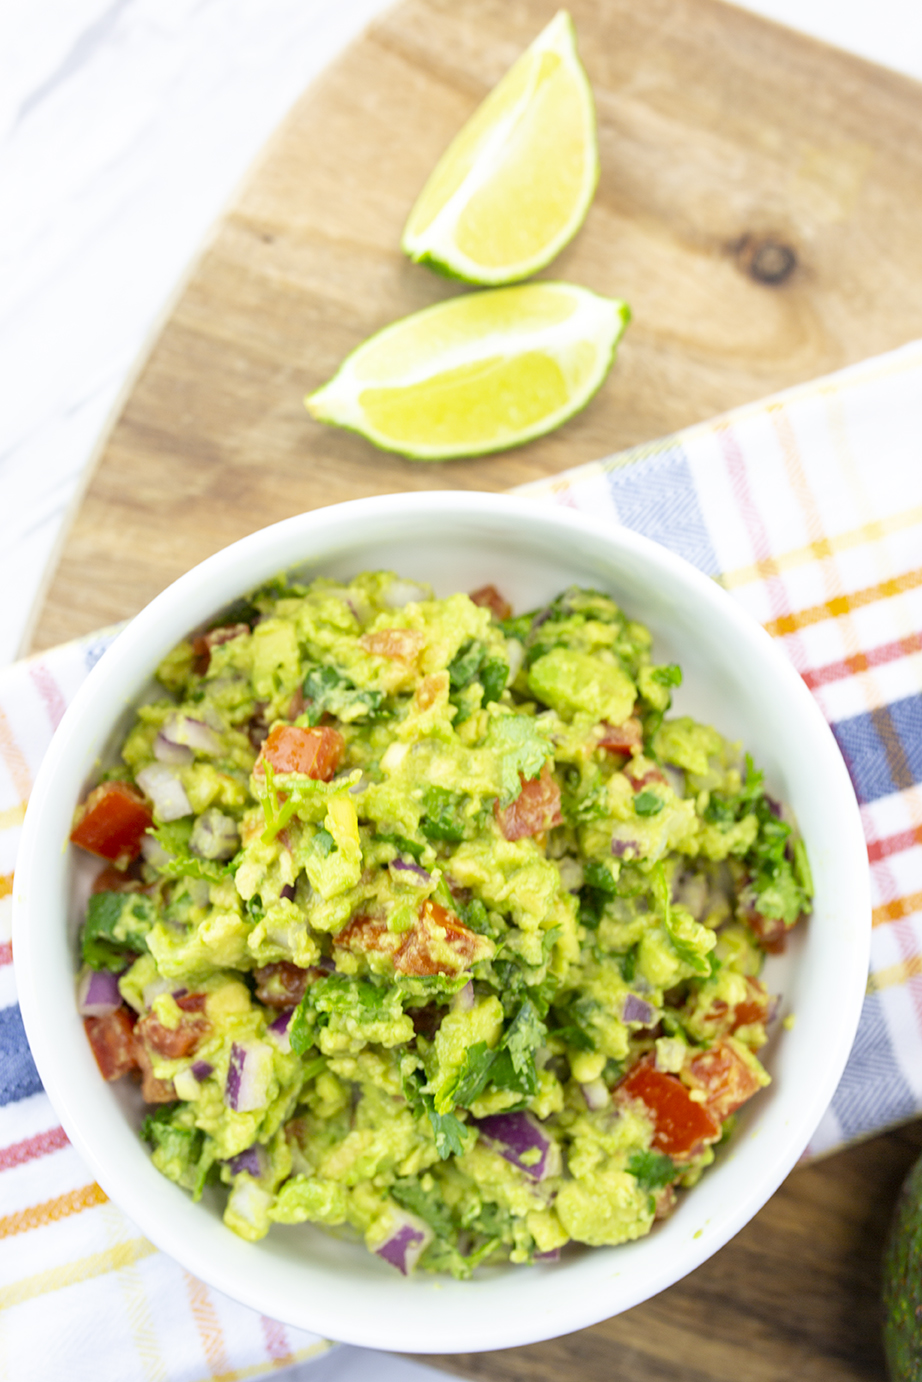 guacamole and limes